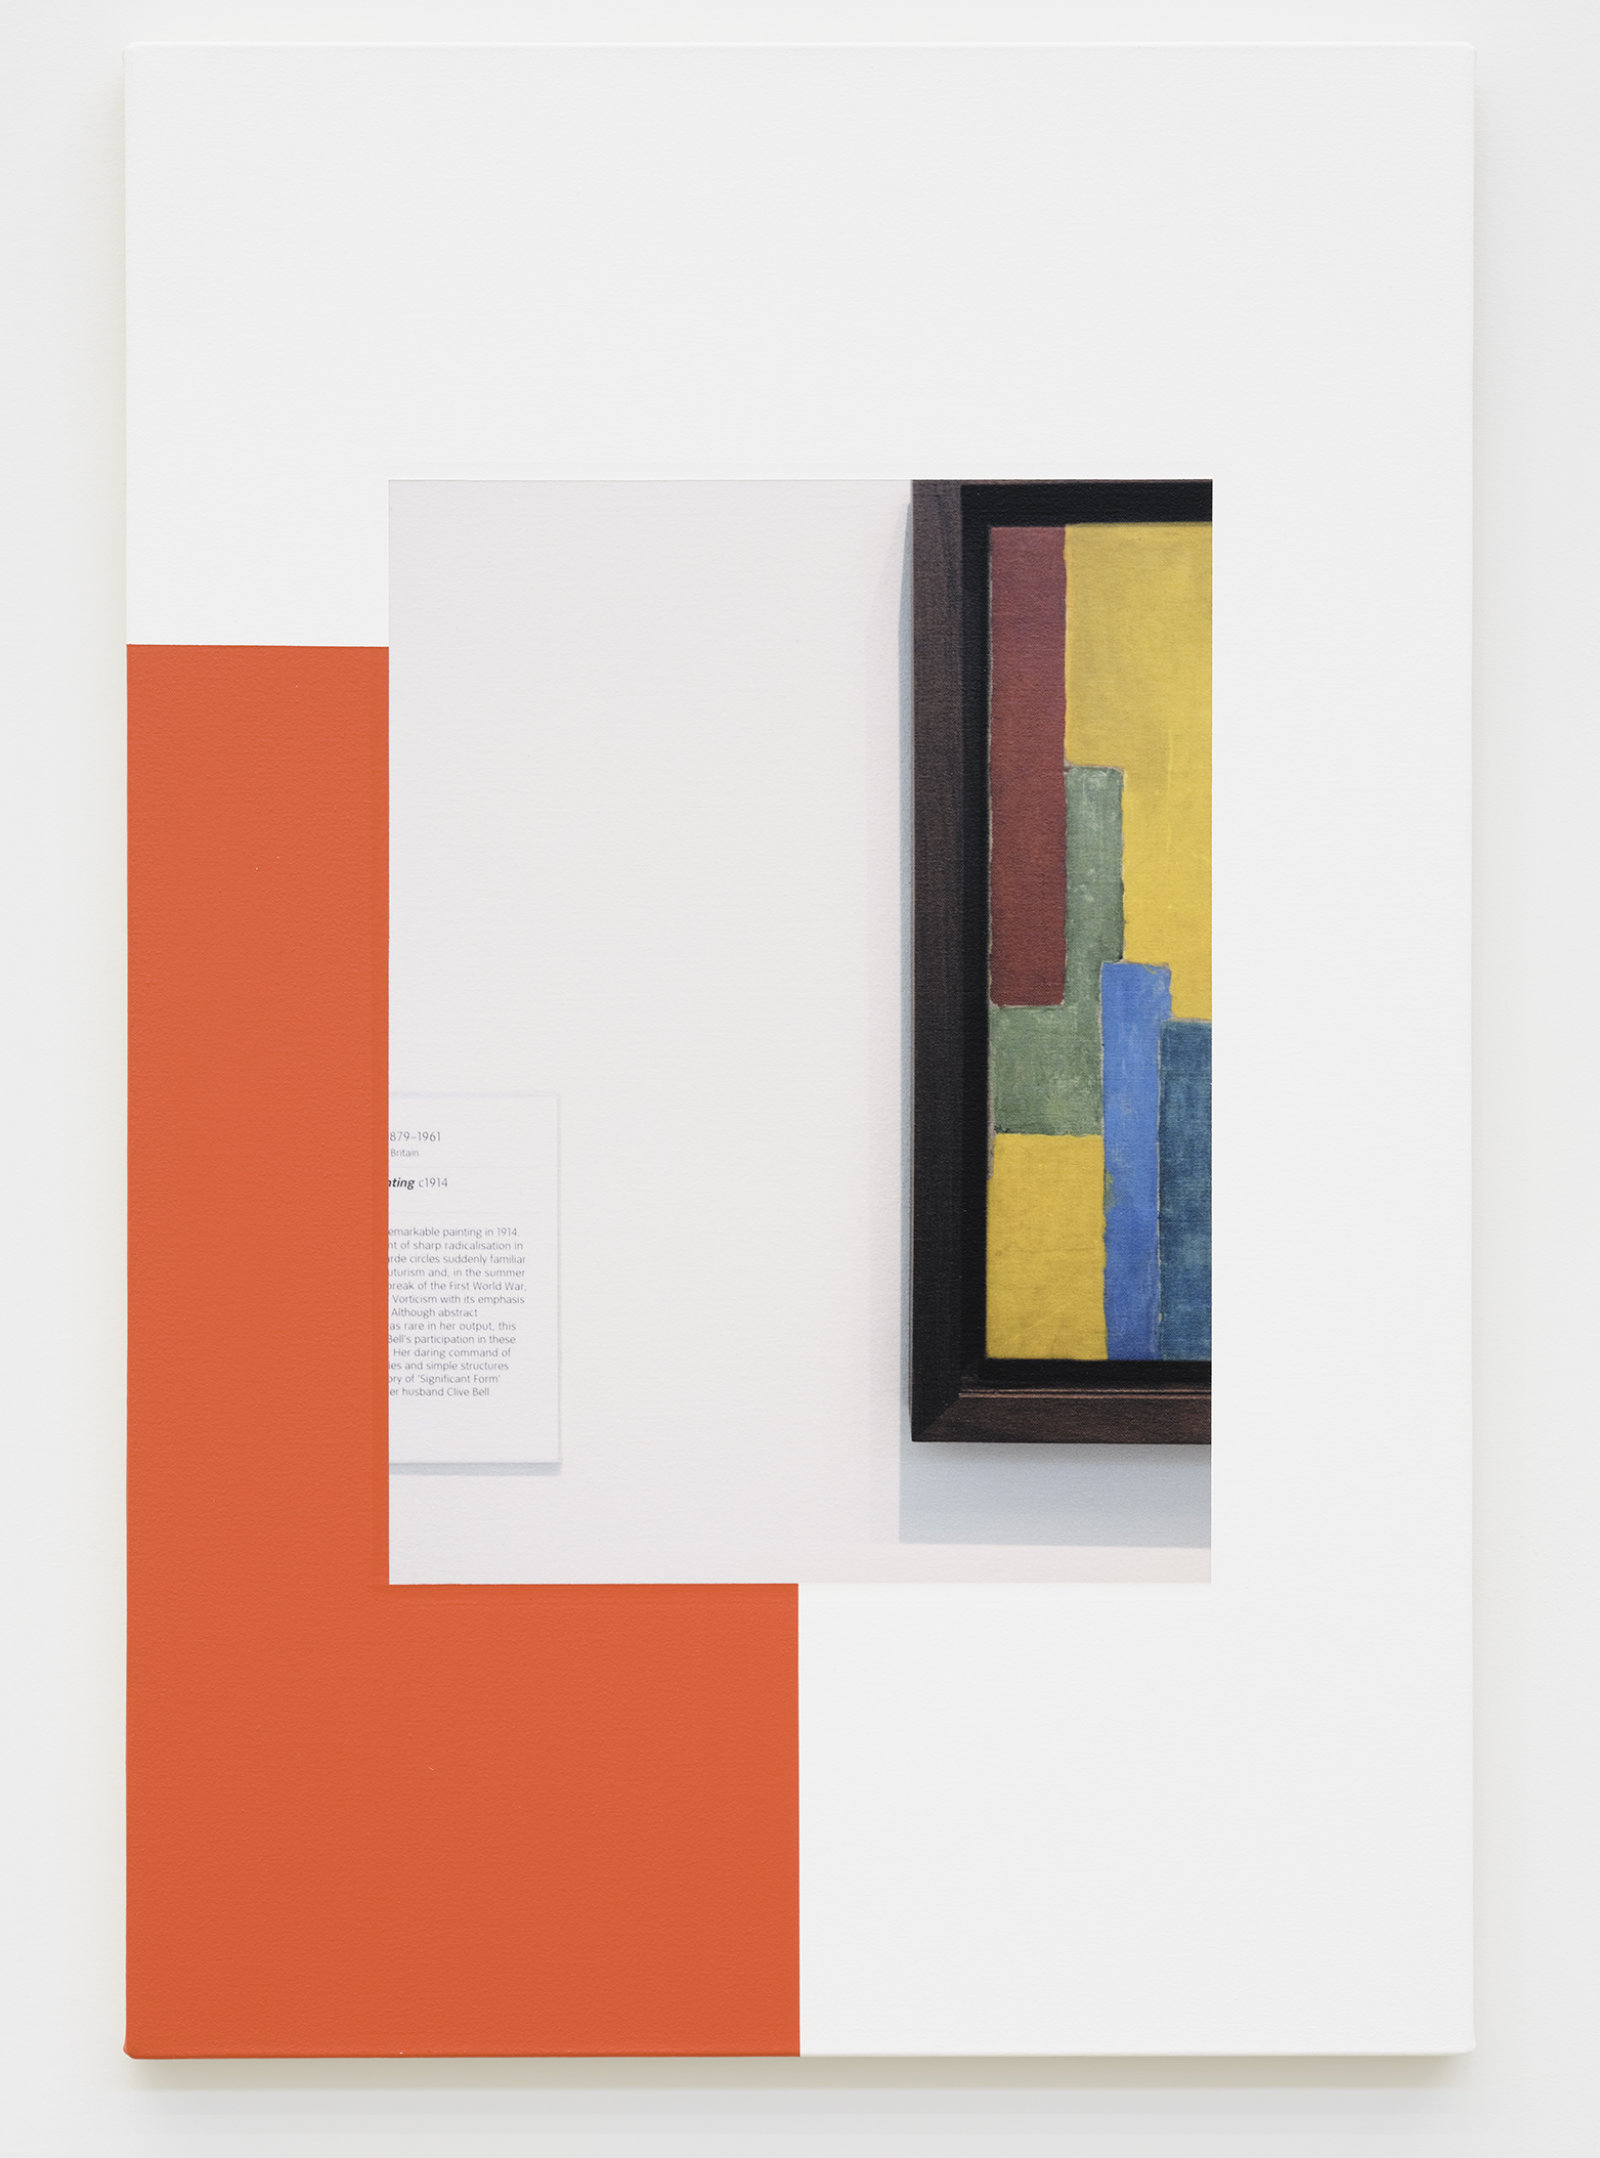 Ian Wallace, Abstract Composition (with Vanessa Bell), 2011, photolaminate with acrylic on canvas, 36 x 24 in. (91 x 61 cm) by Ian Wallace